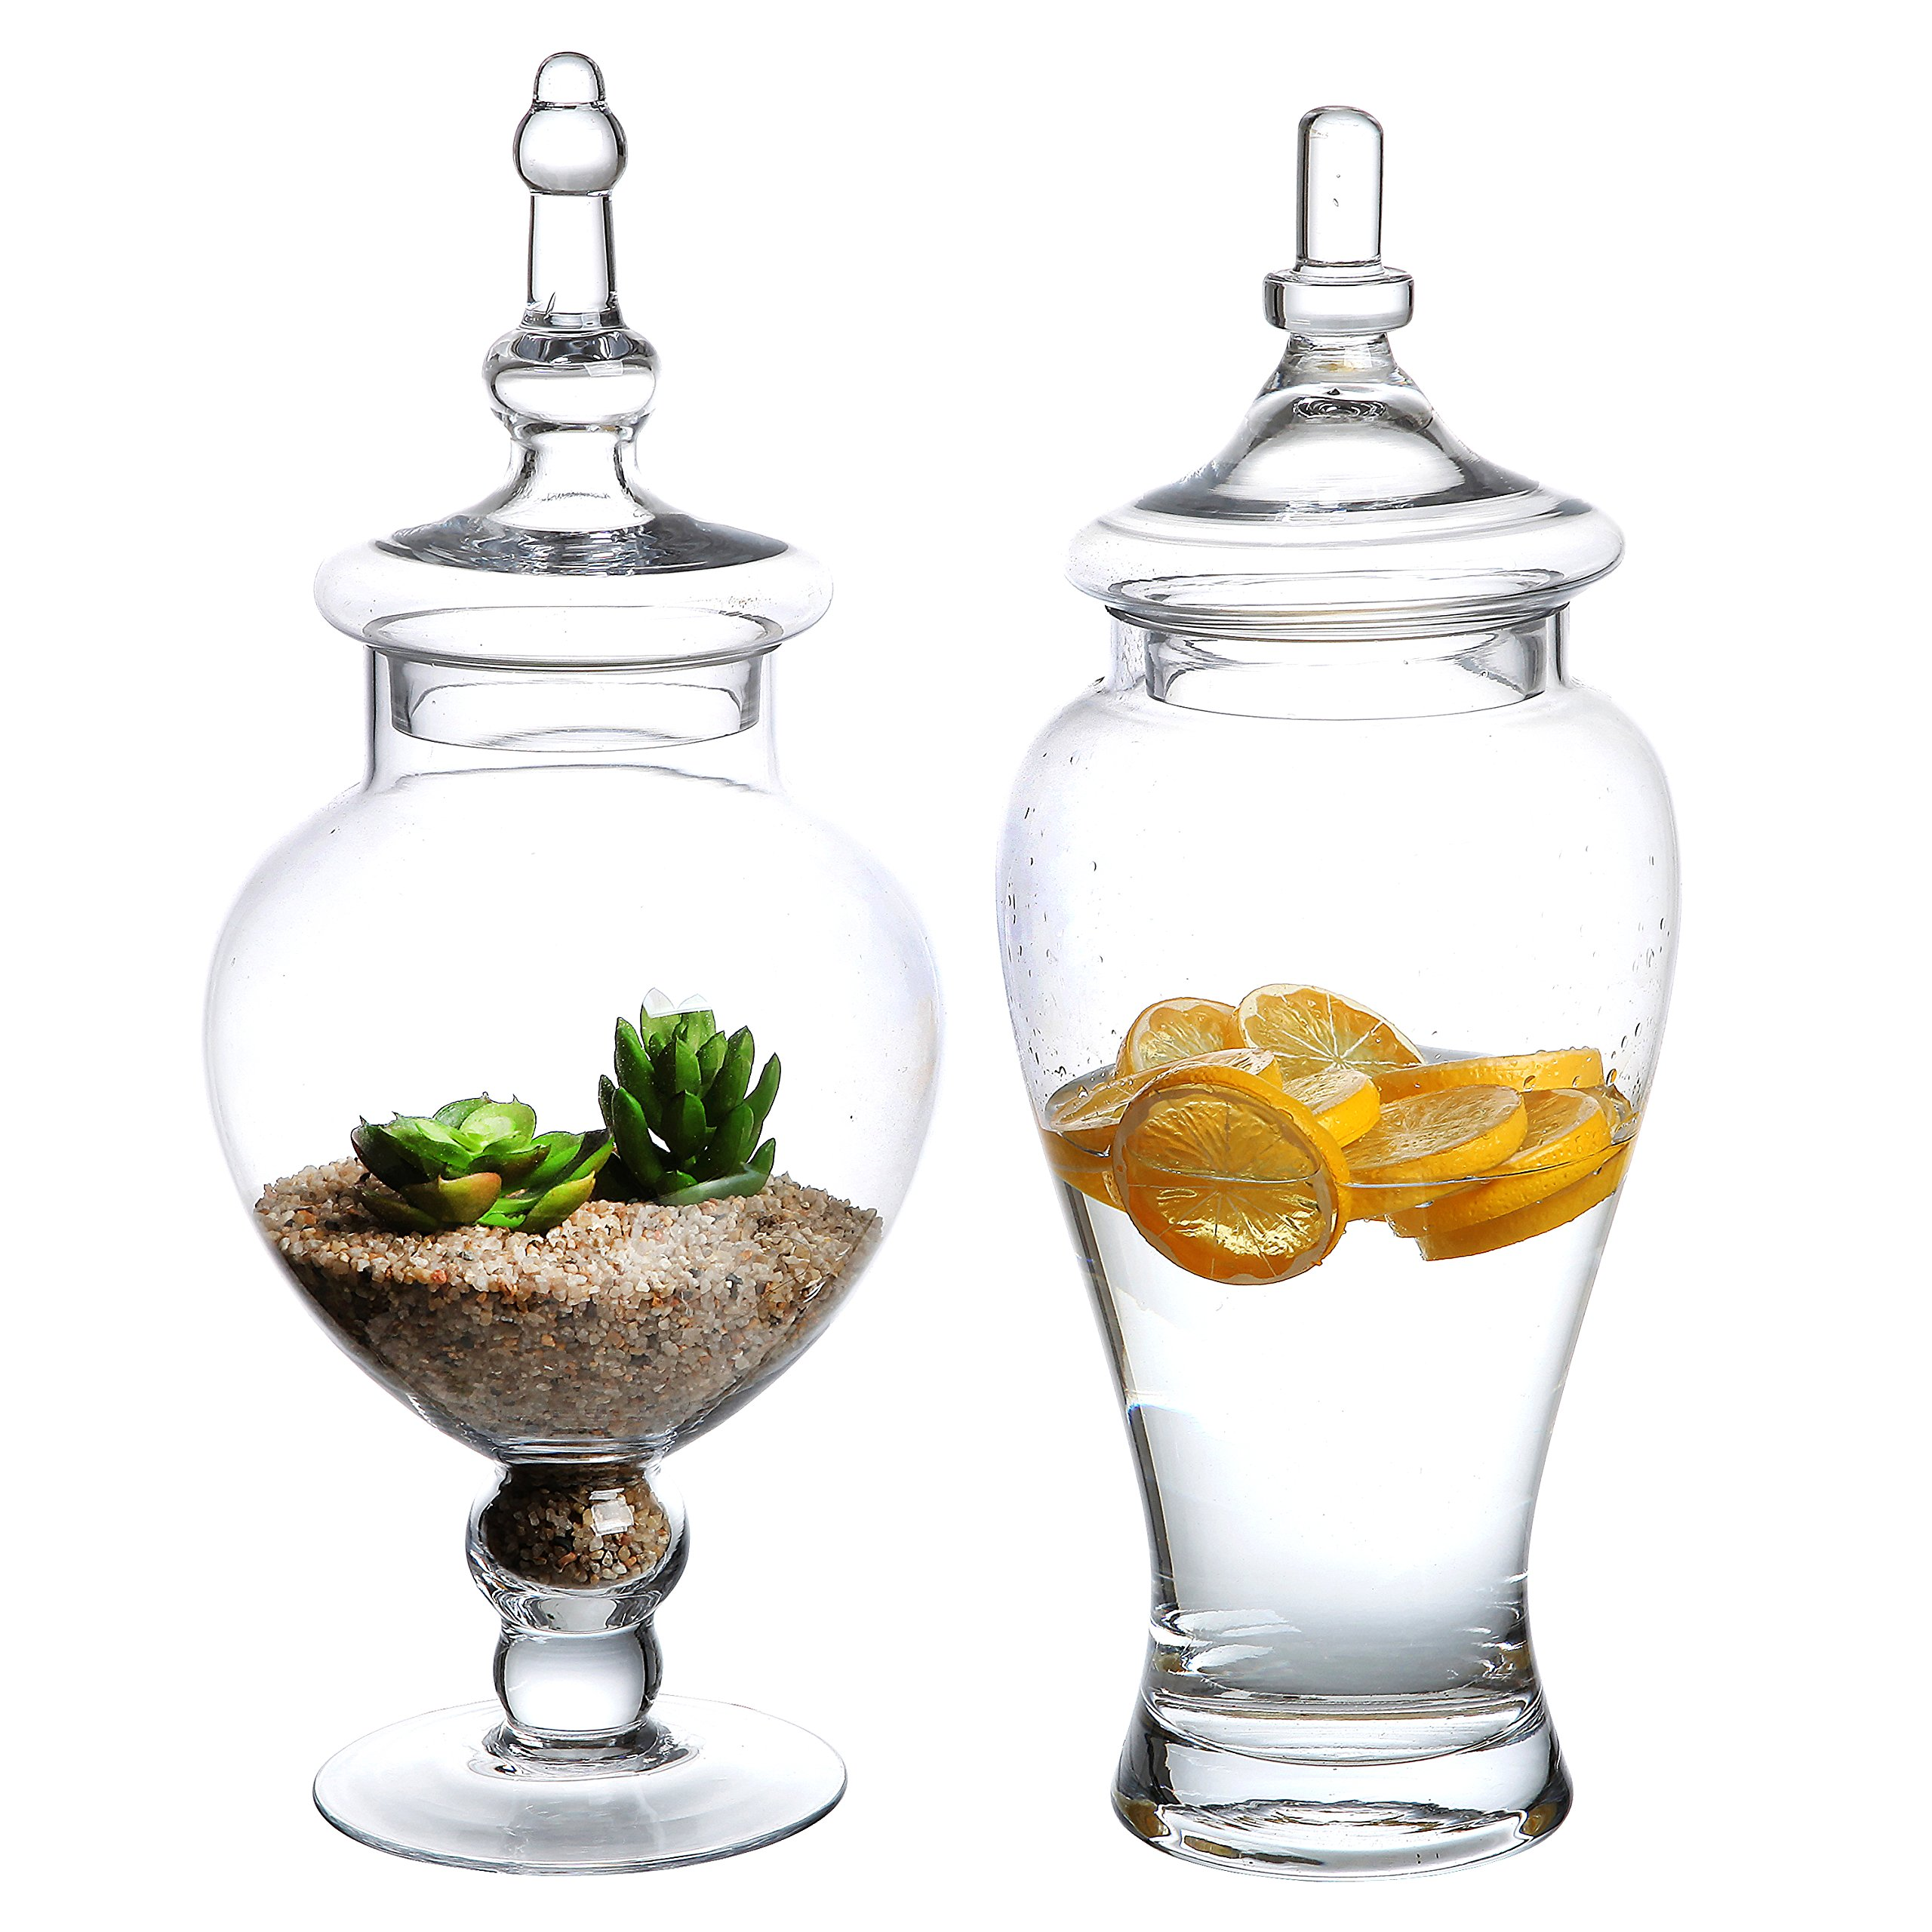 Set of 2 Decorative Clear Glass Apothecary Jars / Wedding Centerpieces / Candy Storage Canister